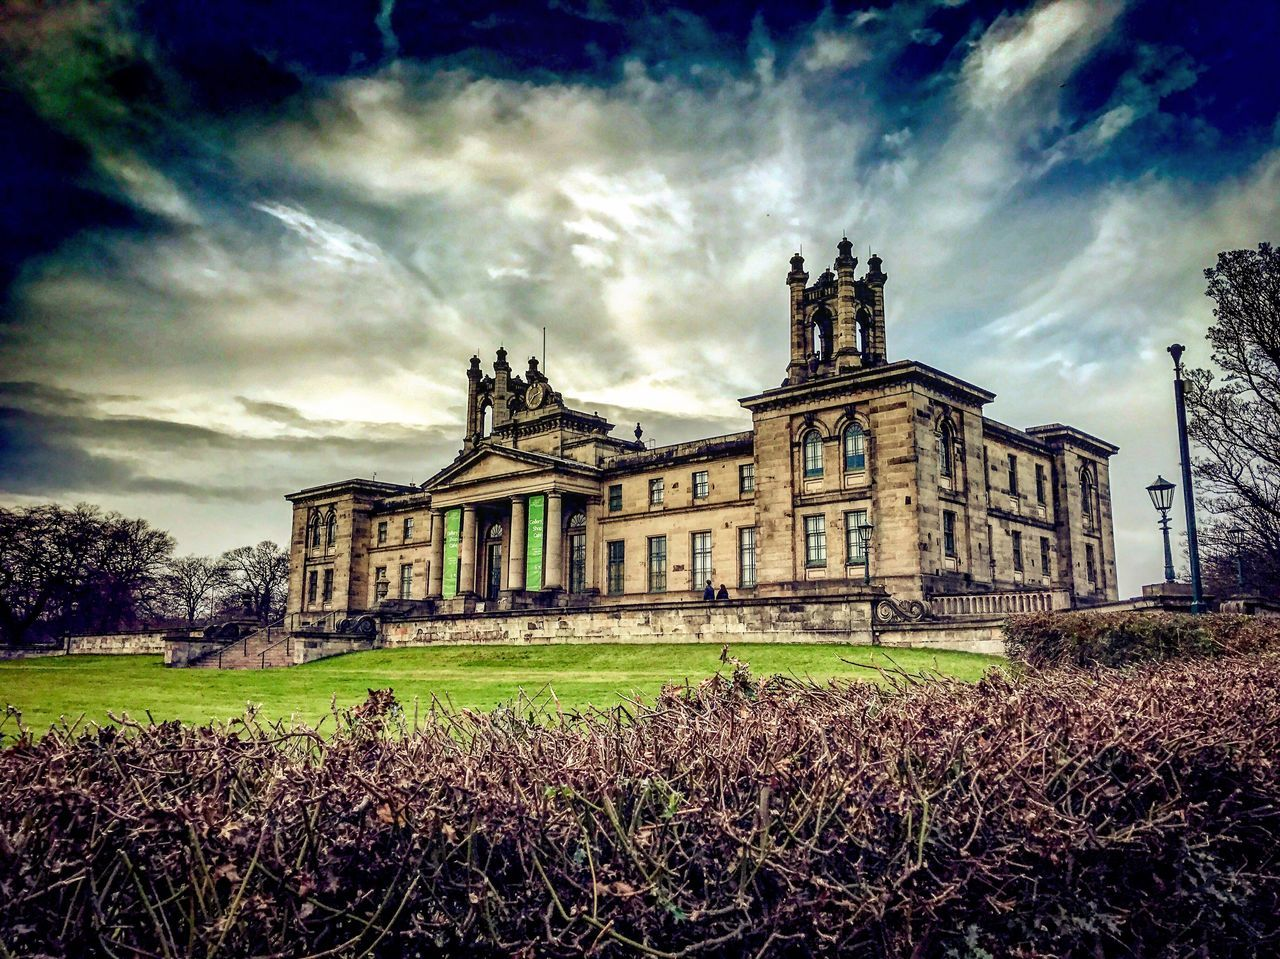 architecture, sky, grass, field, built structure, building exterior, abandoned, cloud - sky, history, religion, spirituality, place of worship, nature, landscape, outdoors, rural scene, no people, scenery, day